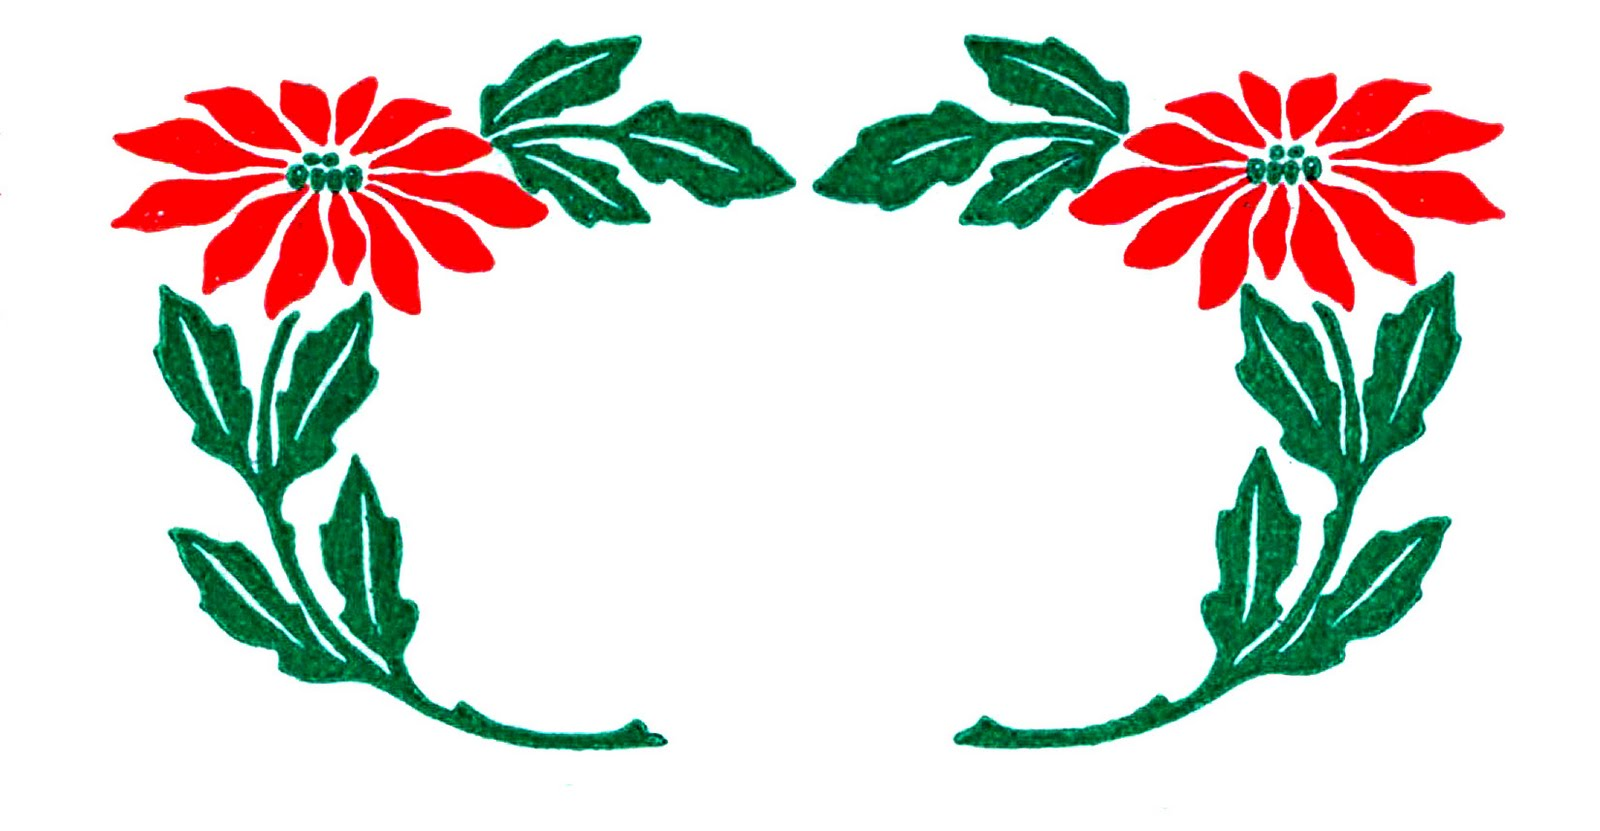 Vintage Christmas Clip Art - Poinsettia Wreaths - The Graphics Fairy